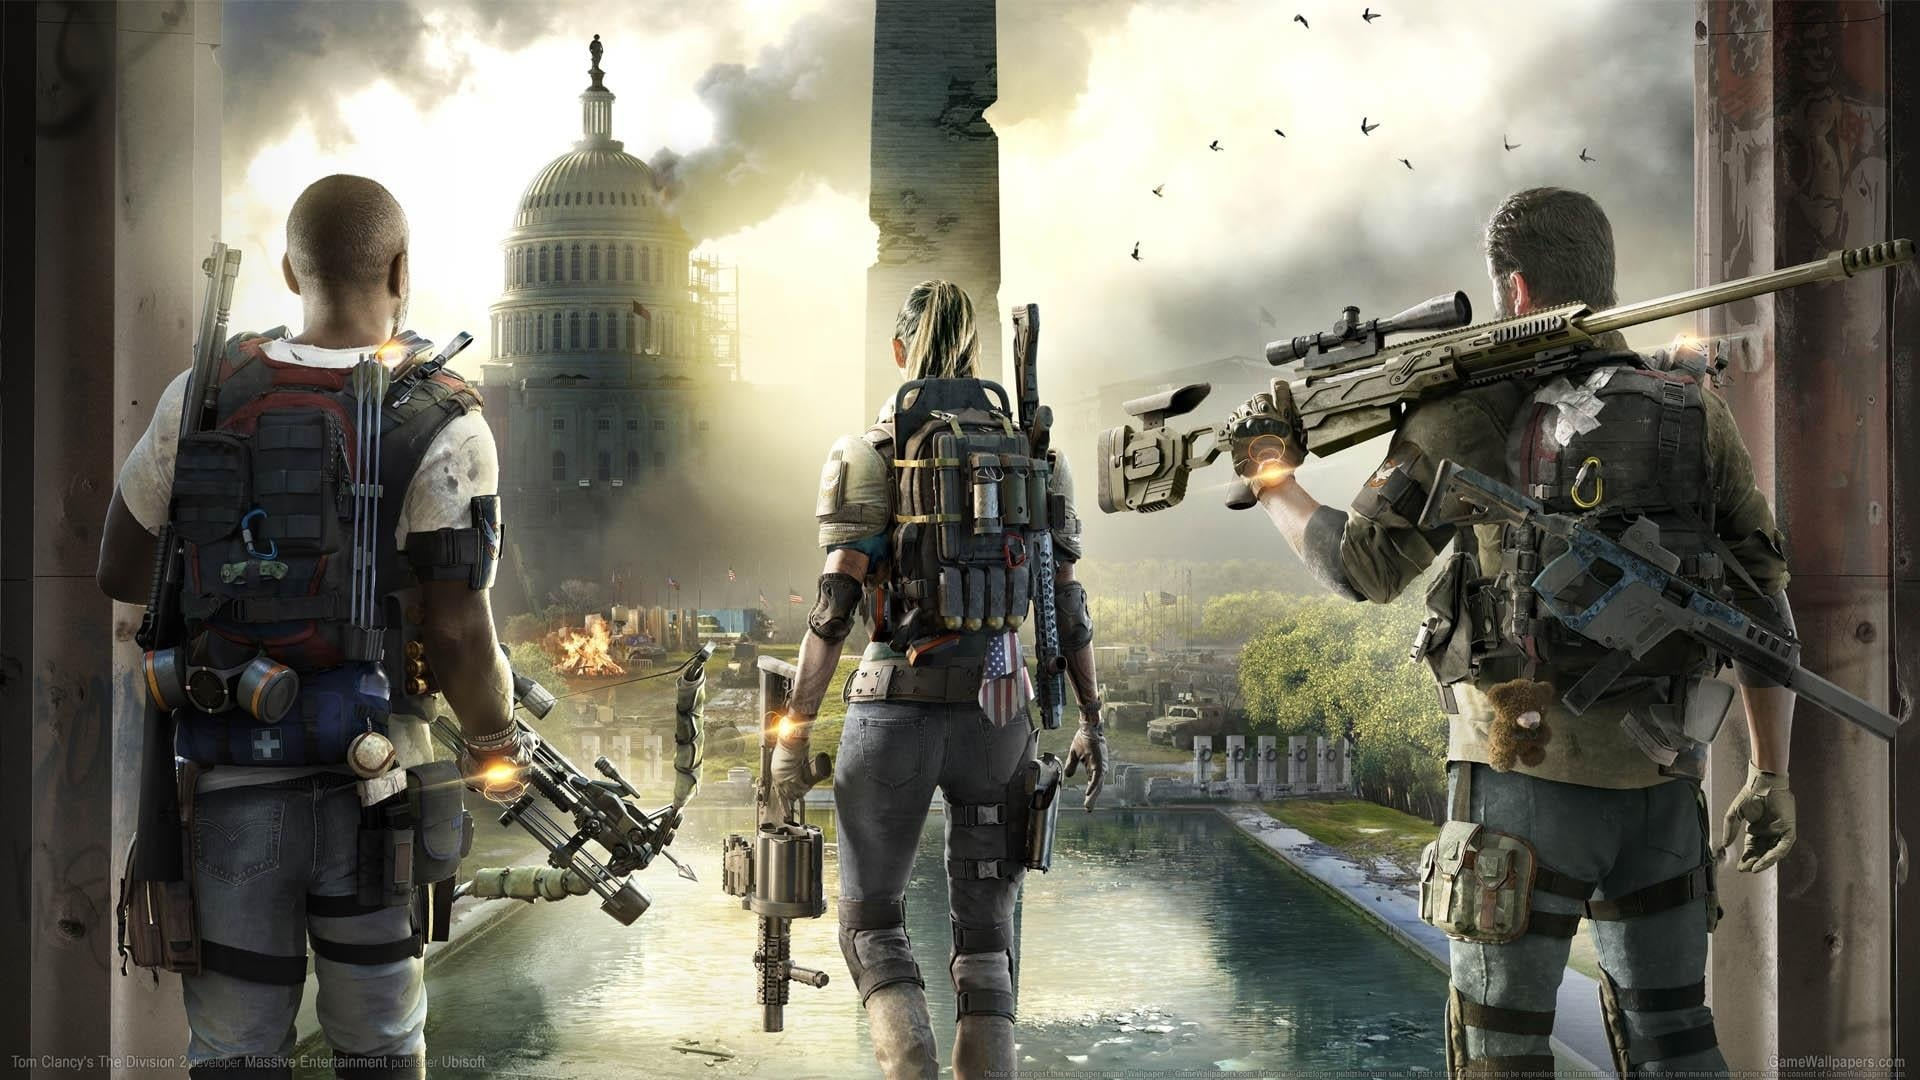 Division 2 Adds New Gunner Specialization To The Game, DLC and Other Patches Rolling In As Summer Progresses